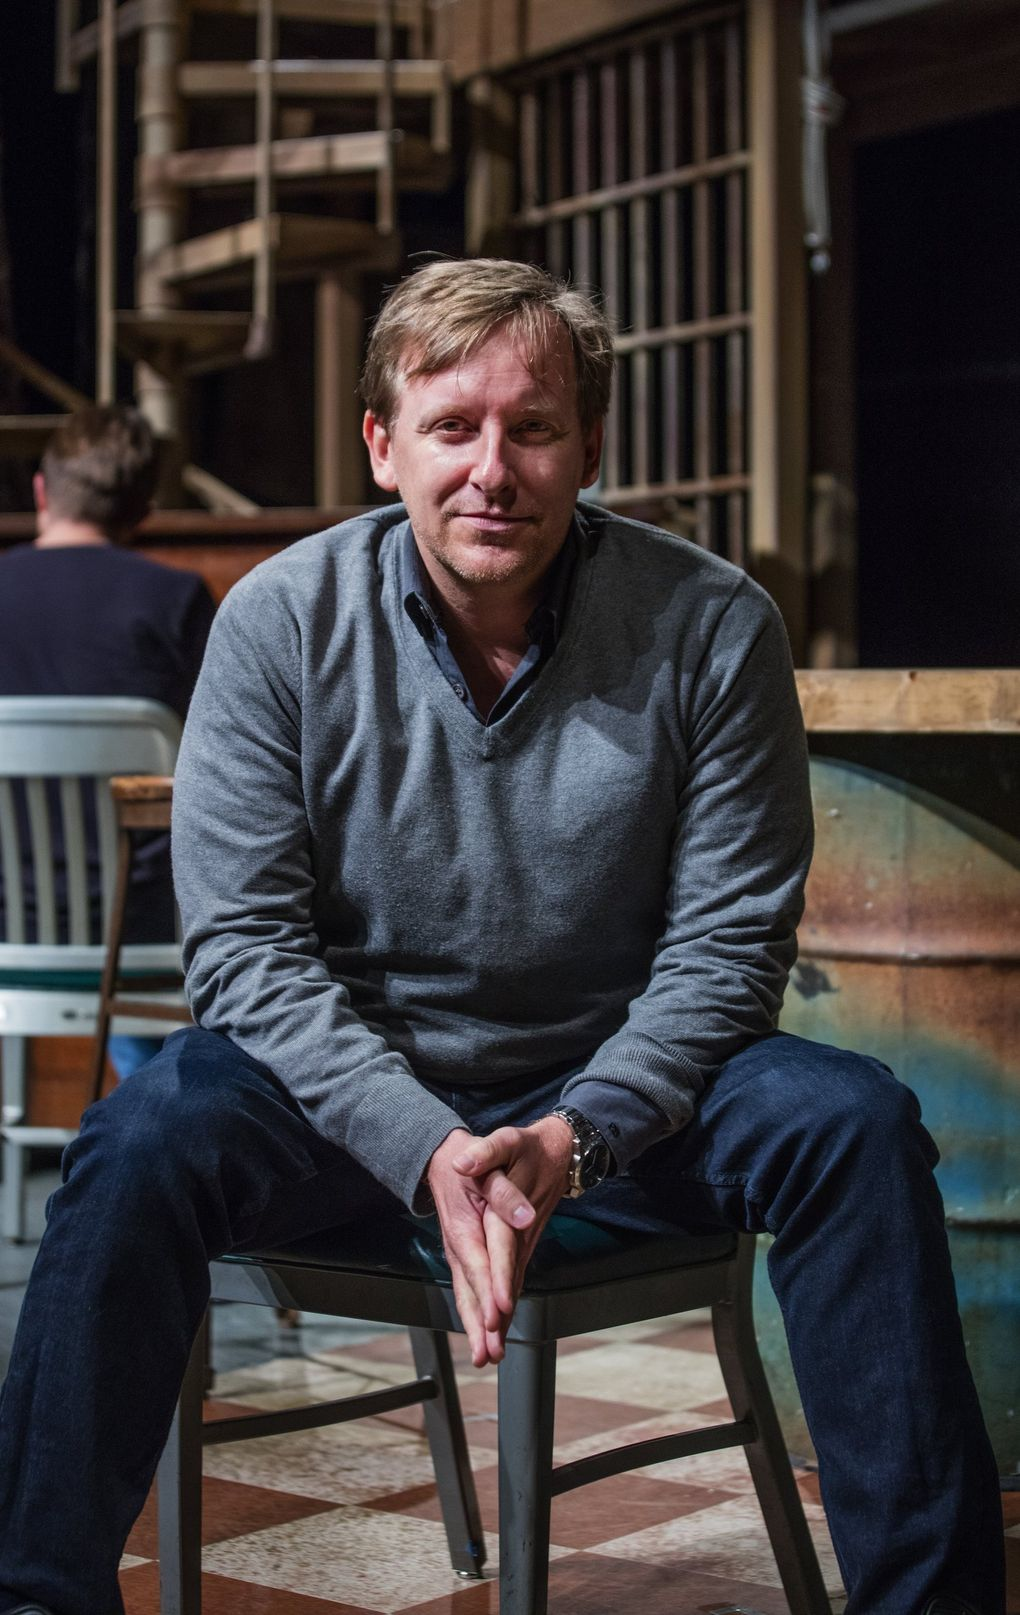 John Langs, artistic director of ACT Theatre, says there are practices from smaller theaters that he'd like to bring to ACT, including a more transparent, group process for choosing plays, and commitments such as never having another all-white design team on any production. (Steve Ringman / The Seattle Times)